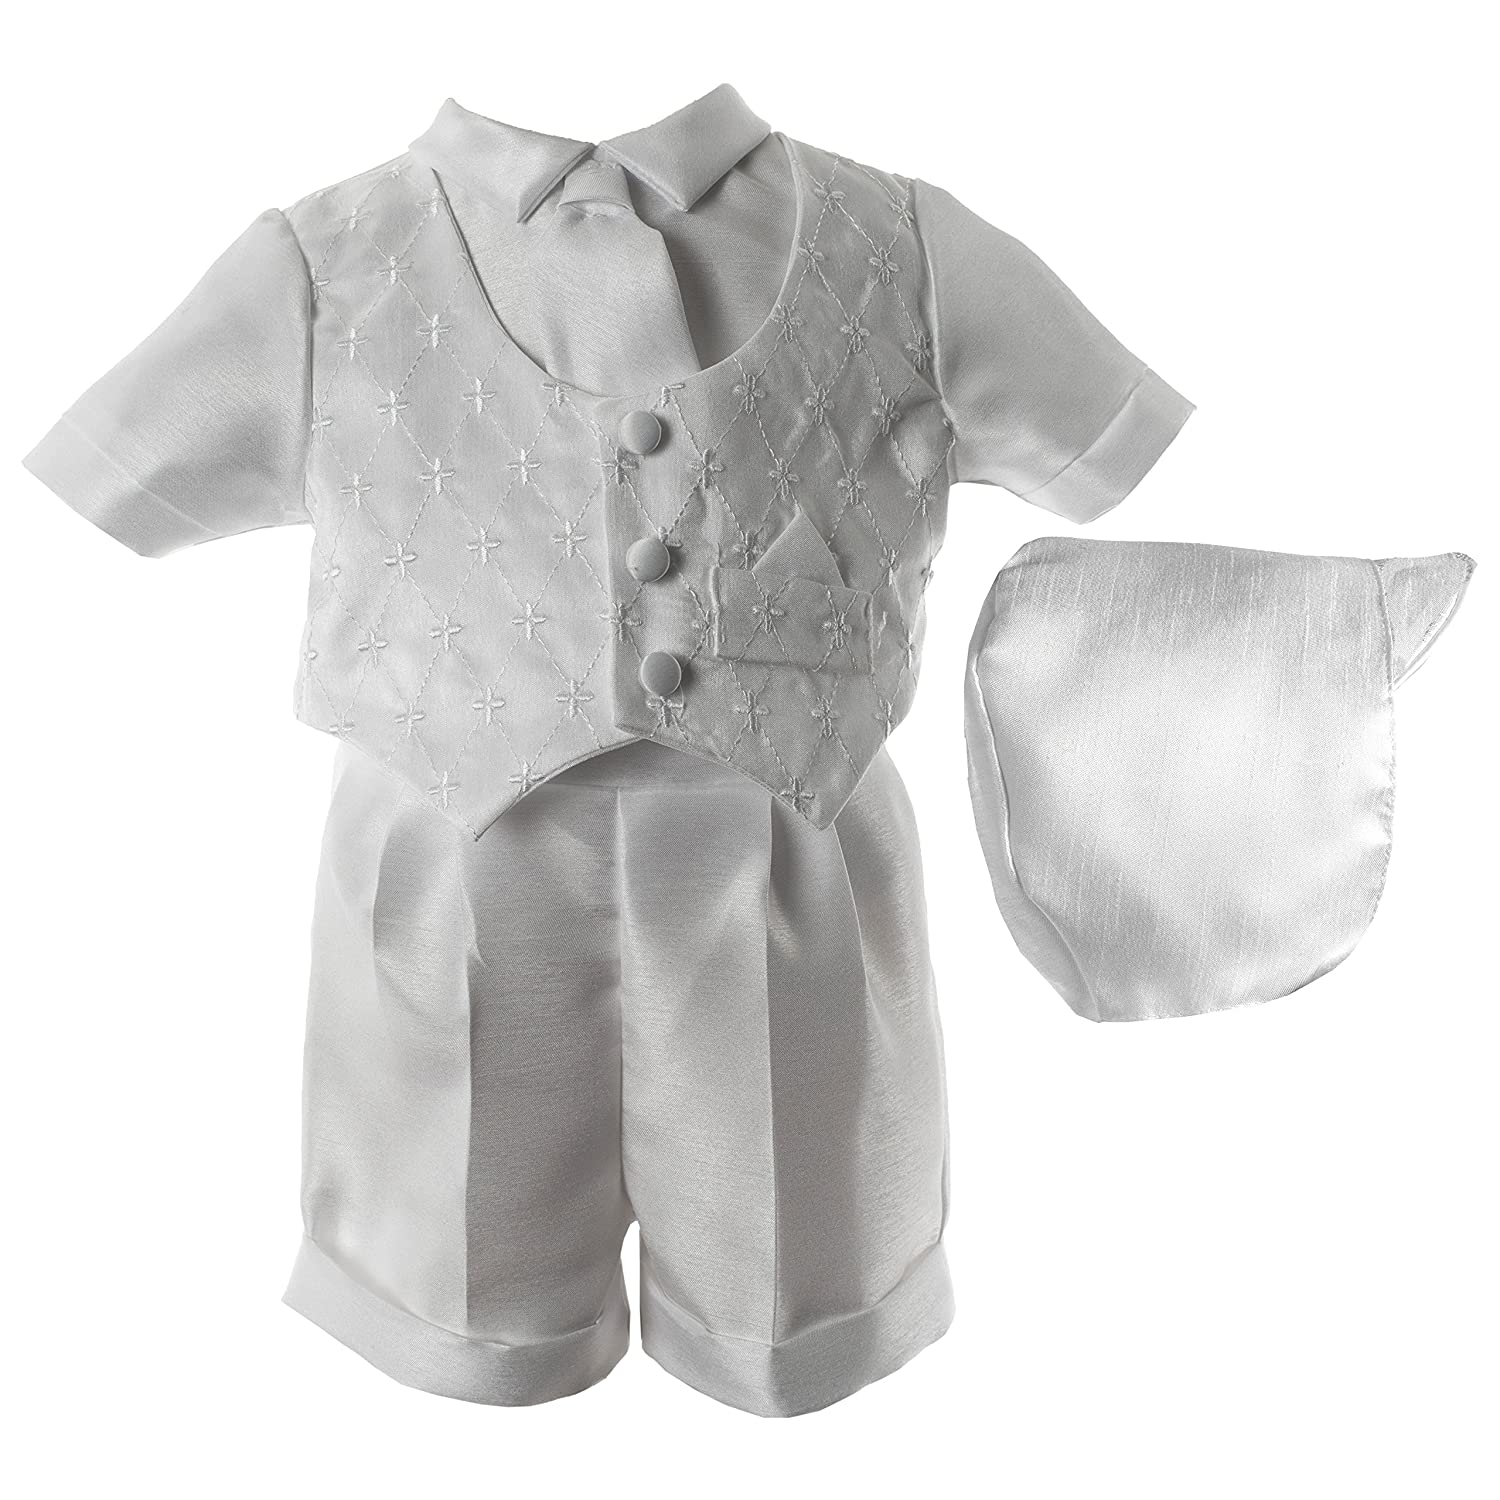 Lauren Madison Baby Boys' Christening Baptism 3 Piece Shantung Short Set Outfit 1527